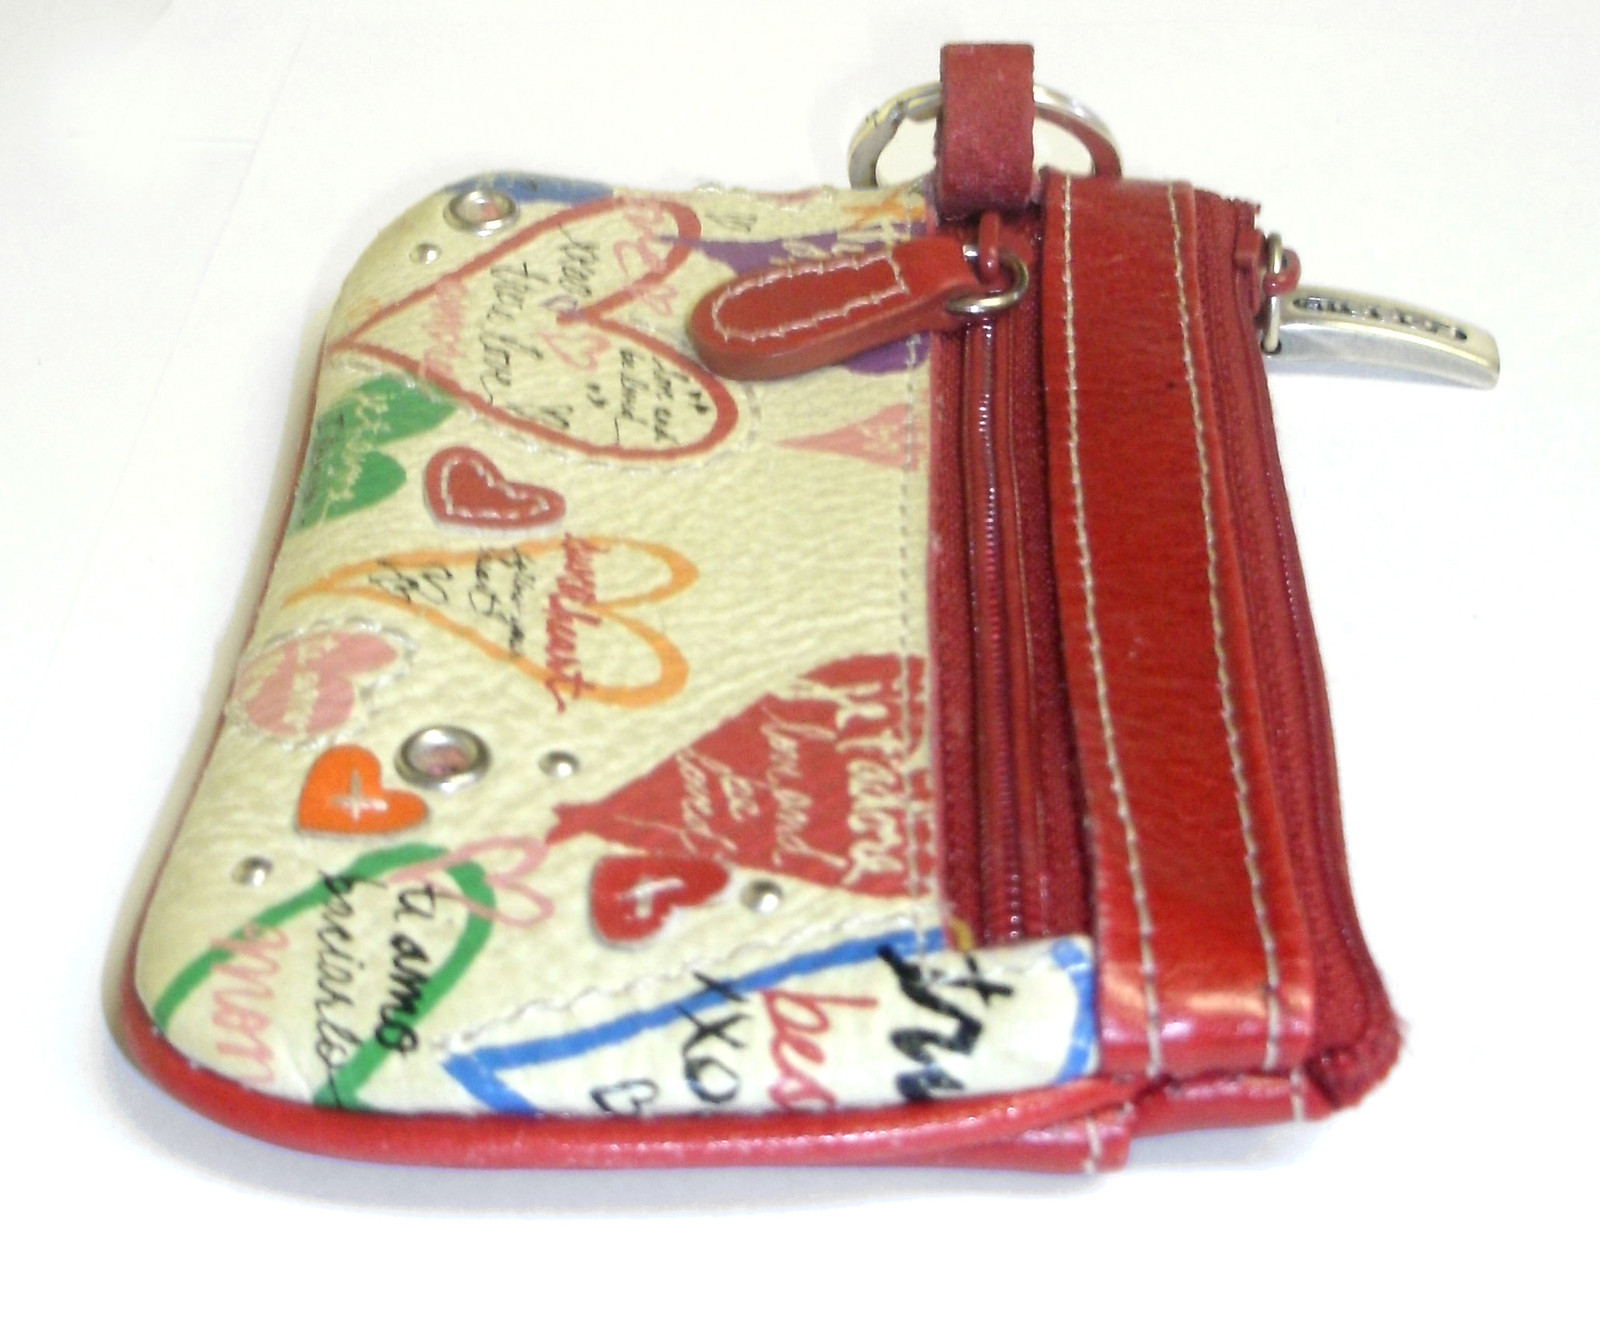 Fossil Mini ID Wallet Coin Purse Red Leather Heart Love Keychain image 6